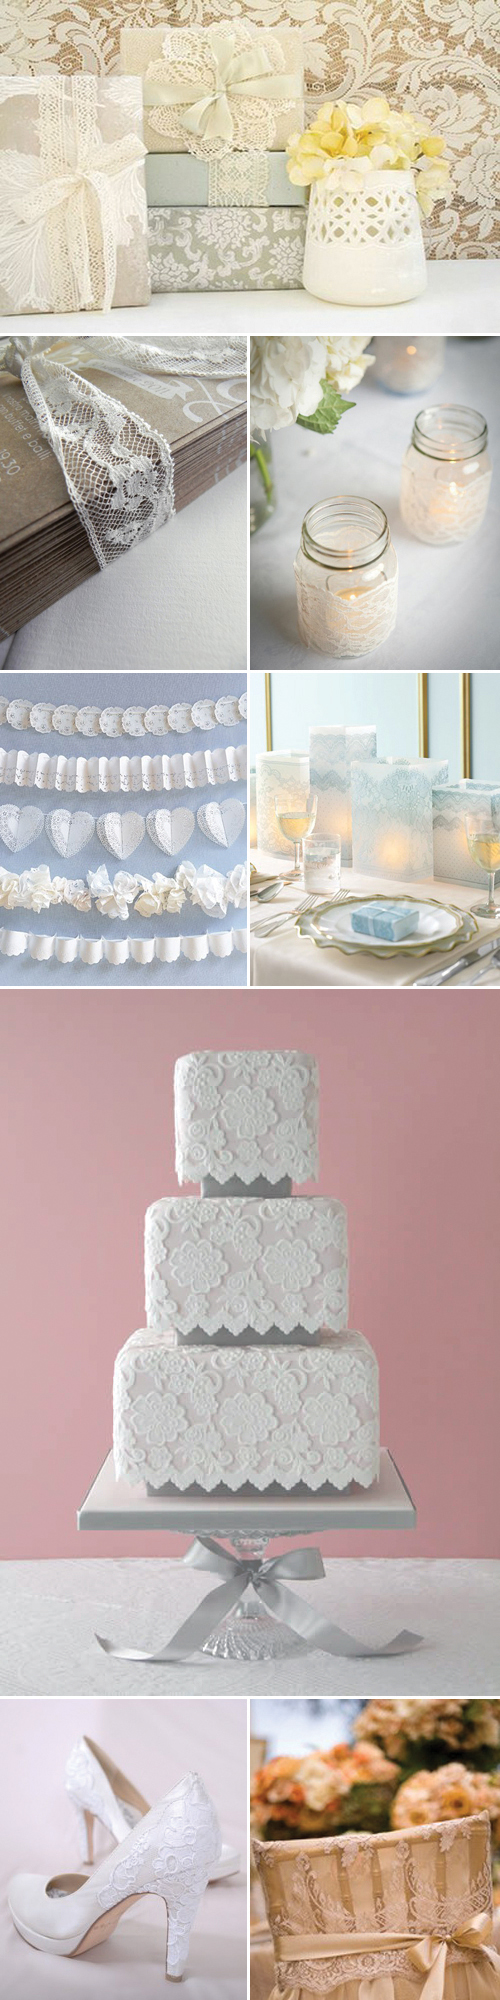 Lace Wedding Inspiration